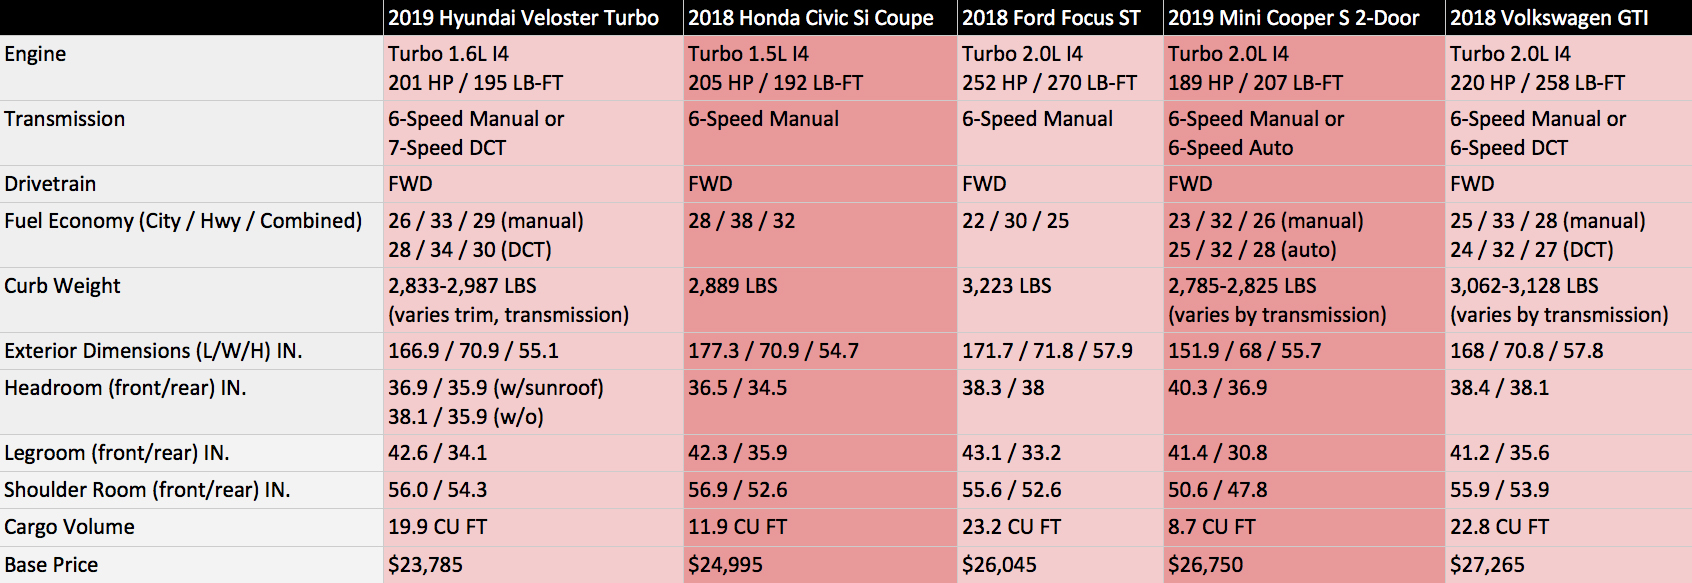 Comparsion of small sporty cars